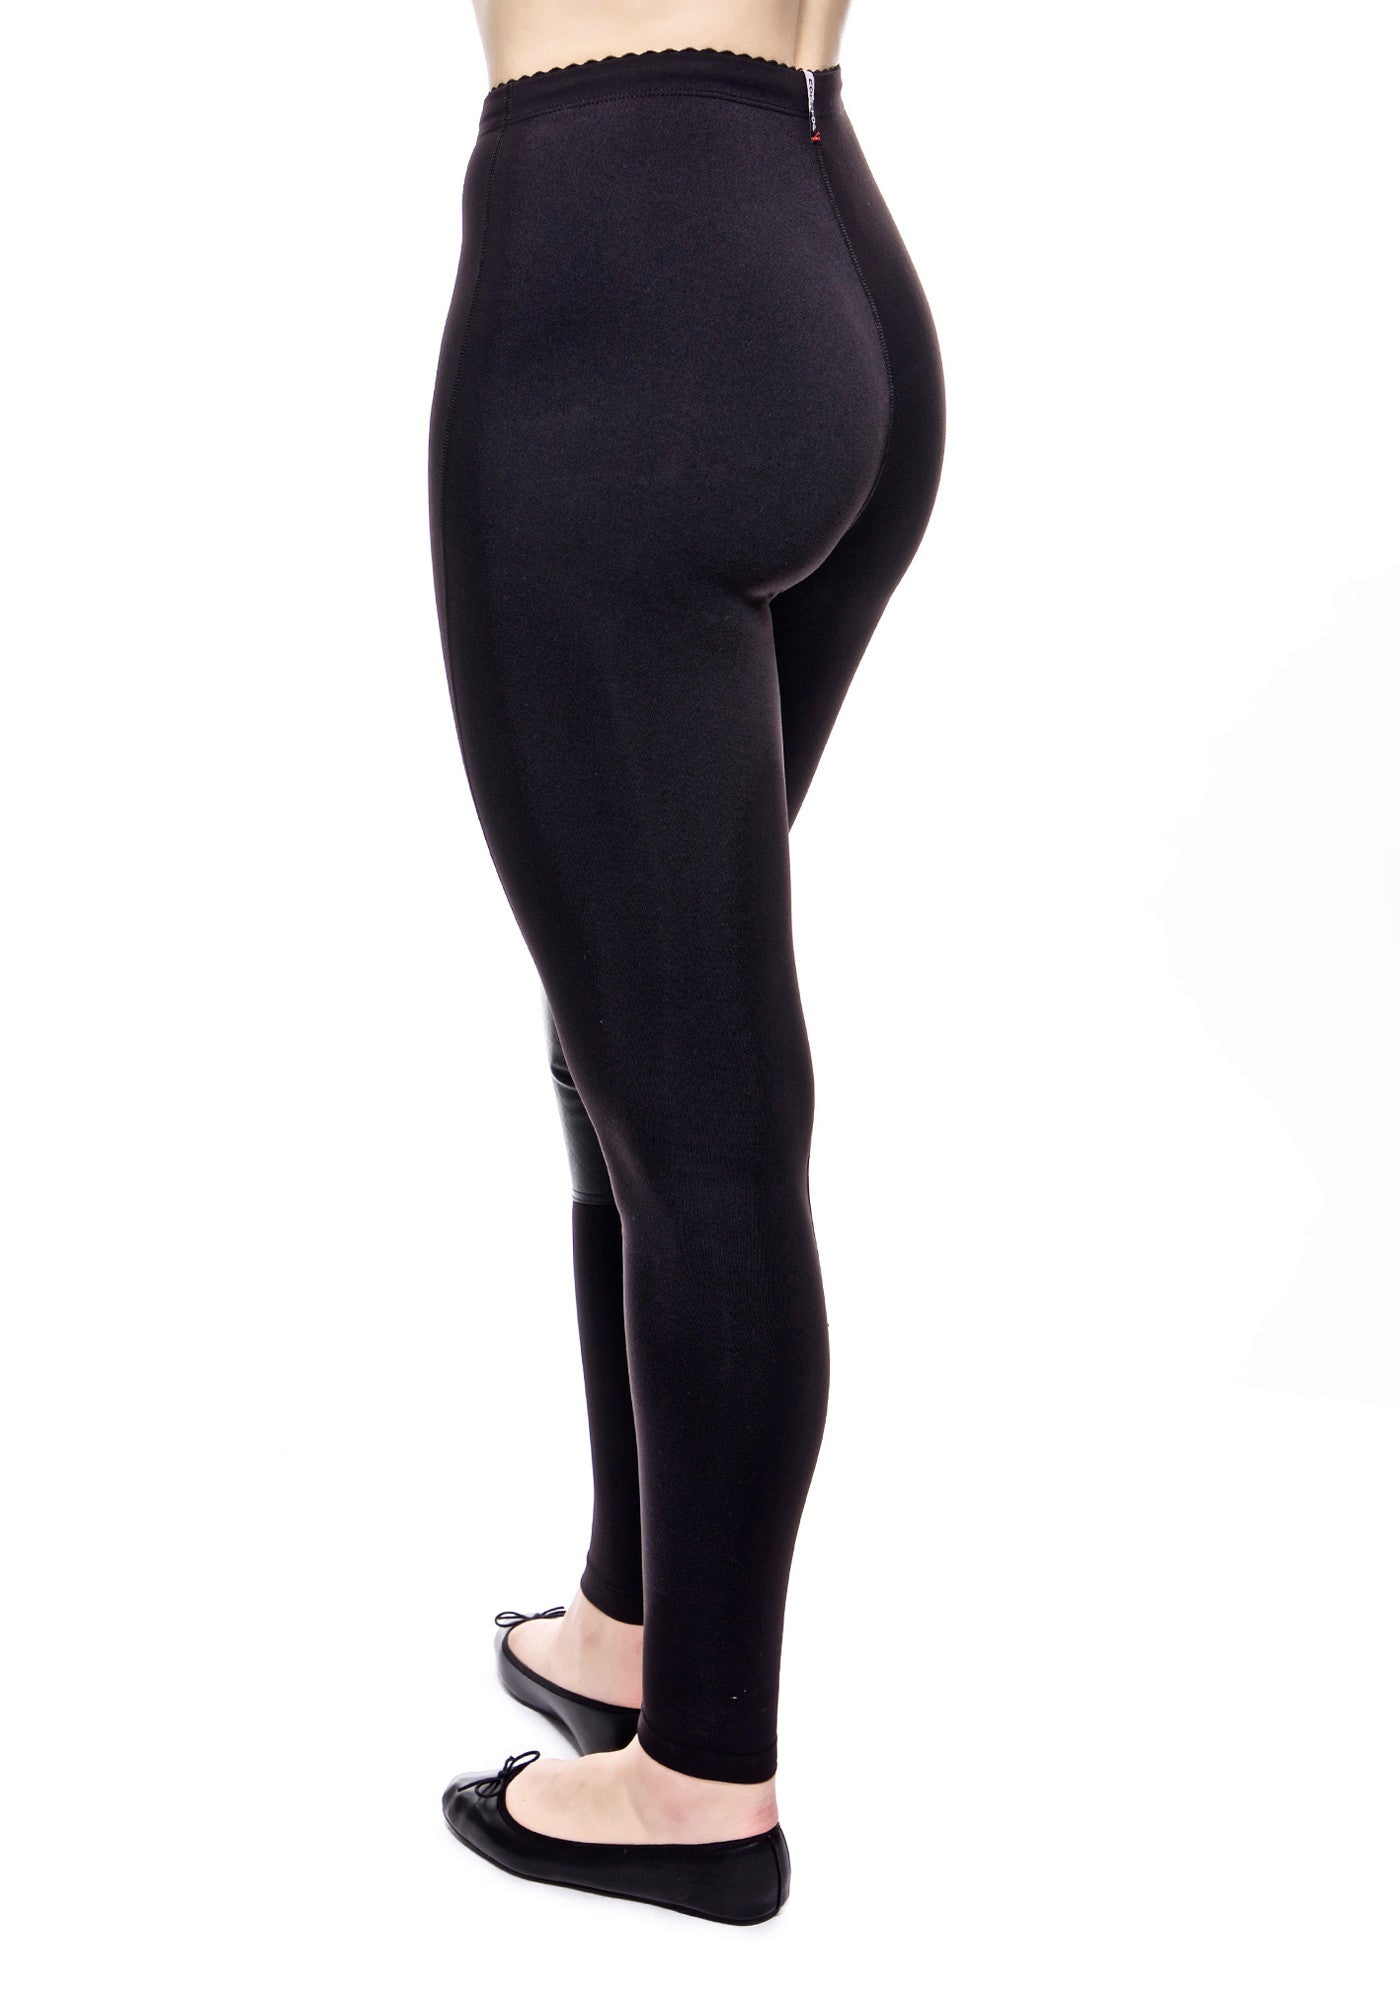 Back view of the high waisted Diana legging in black has leather patch inside the knee. Made from high performance activewear fabric that wicks away moisture to keep you comfortable. Hidden drawstring at waist.